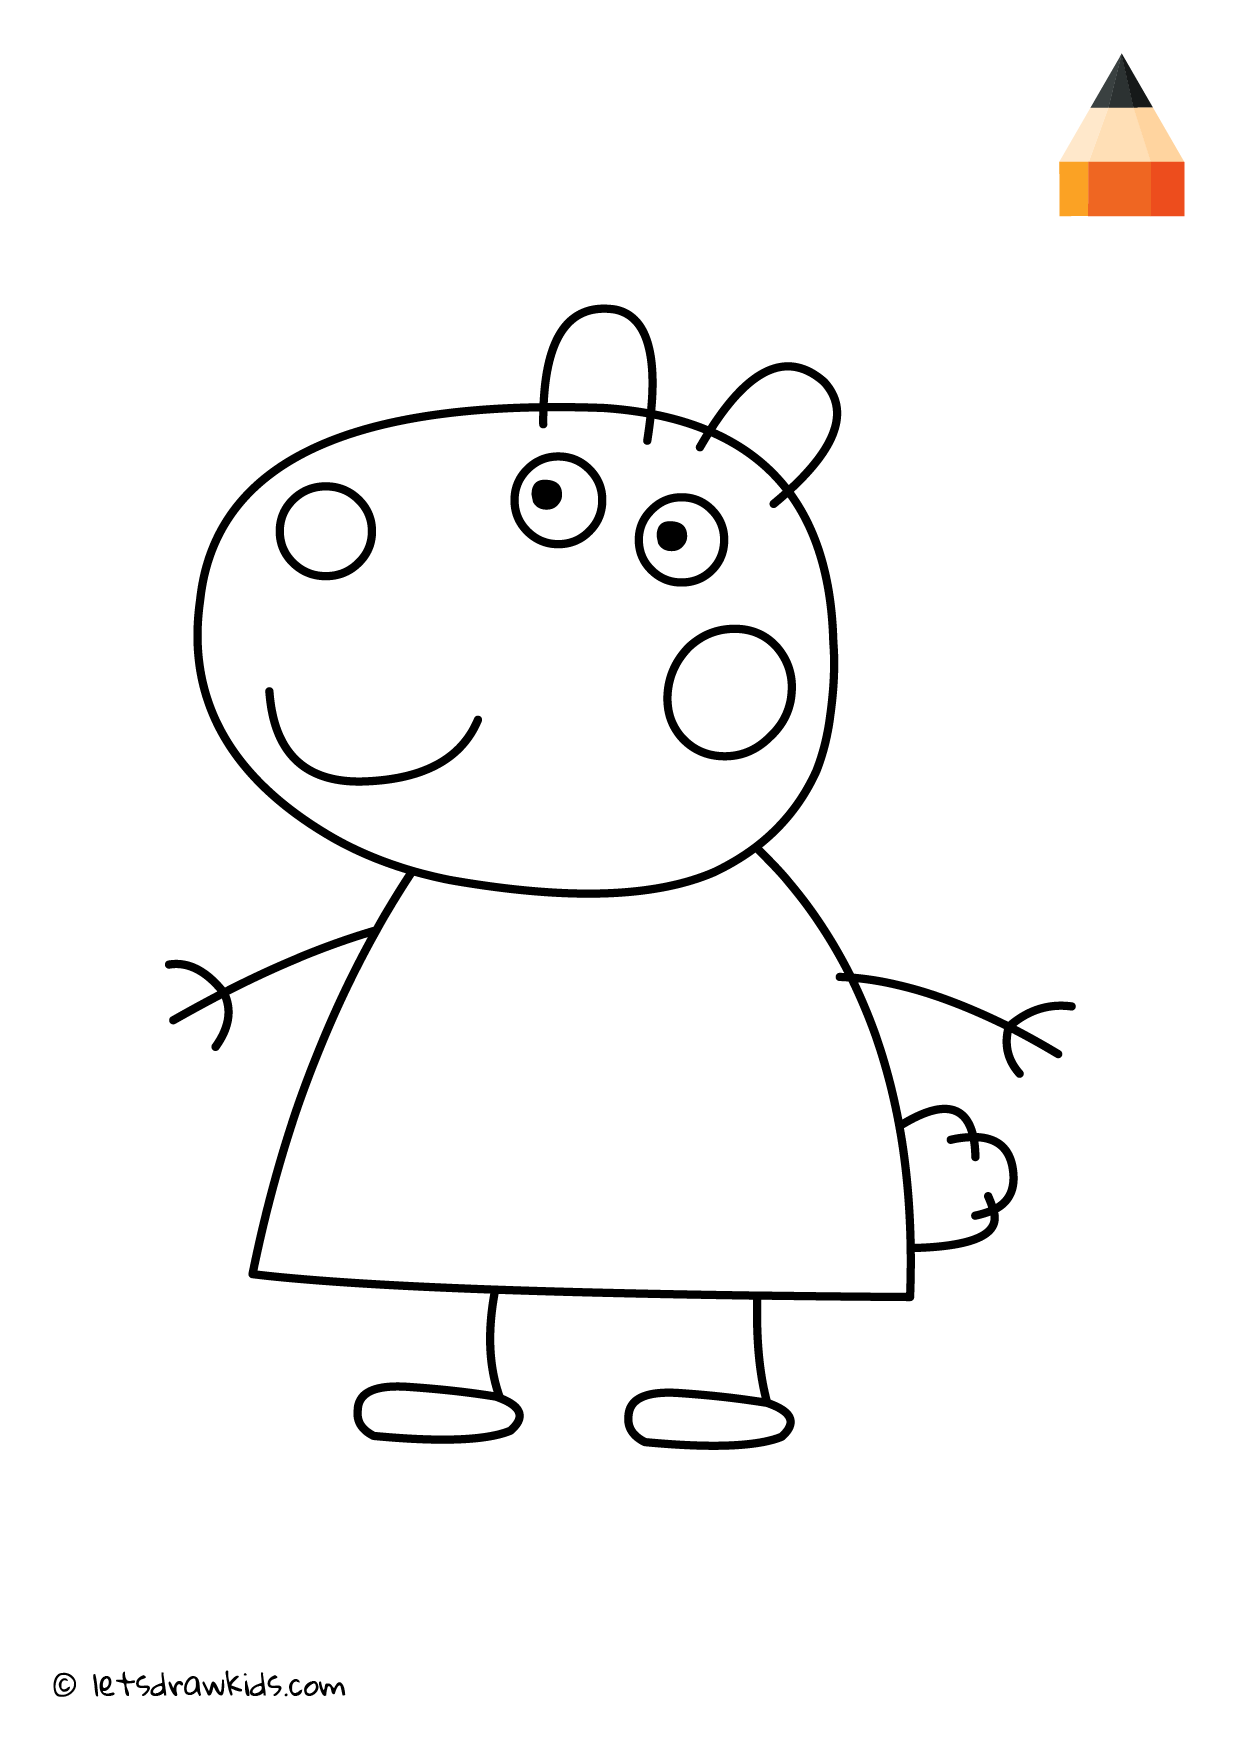 Coloring Page - Peppa Pig - Suzy Sheep | Coloring pages | let\'s draw ...